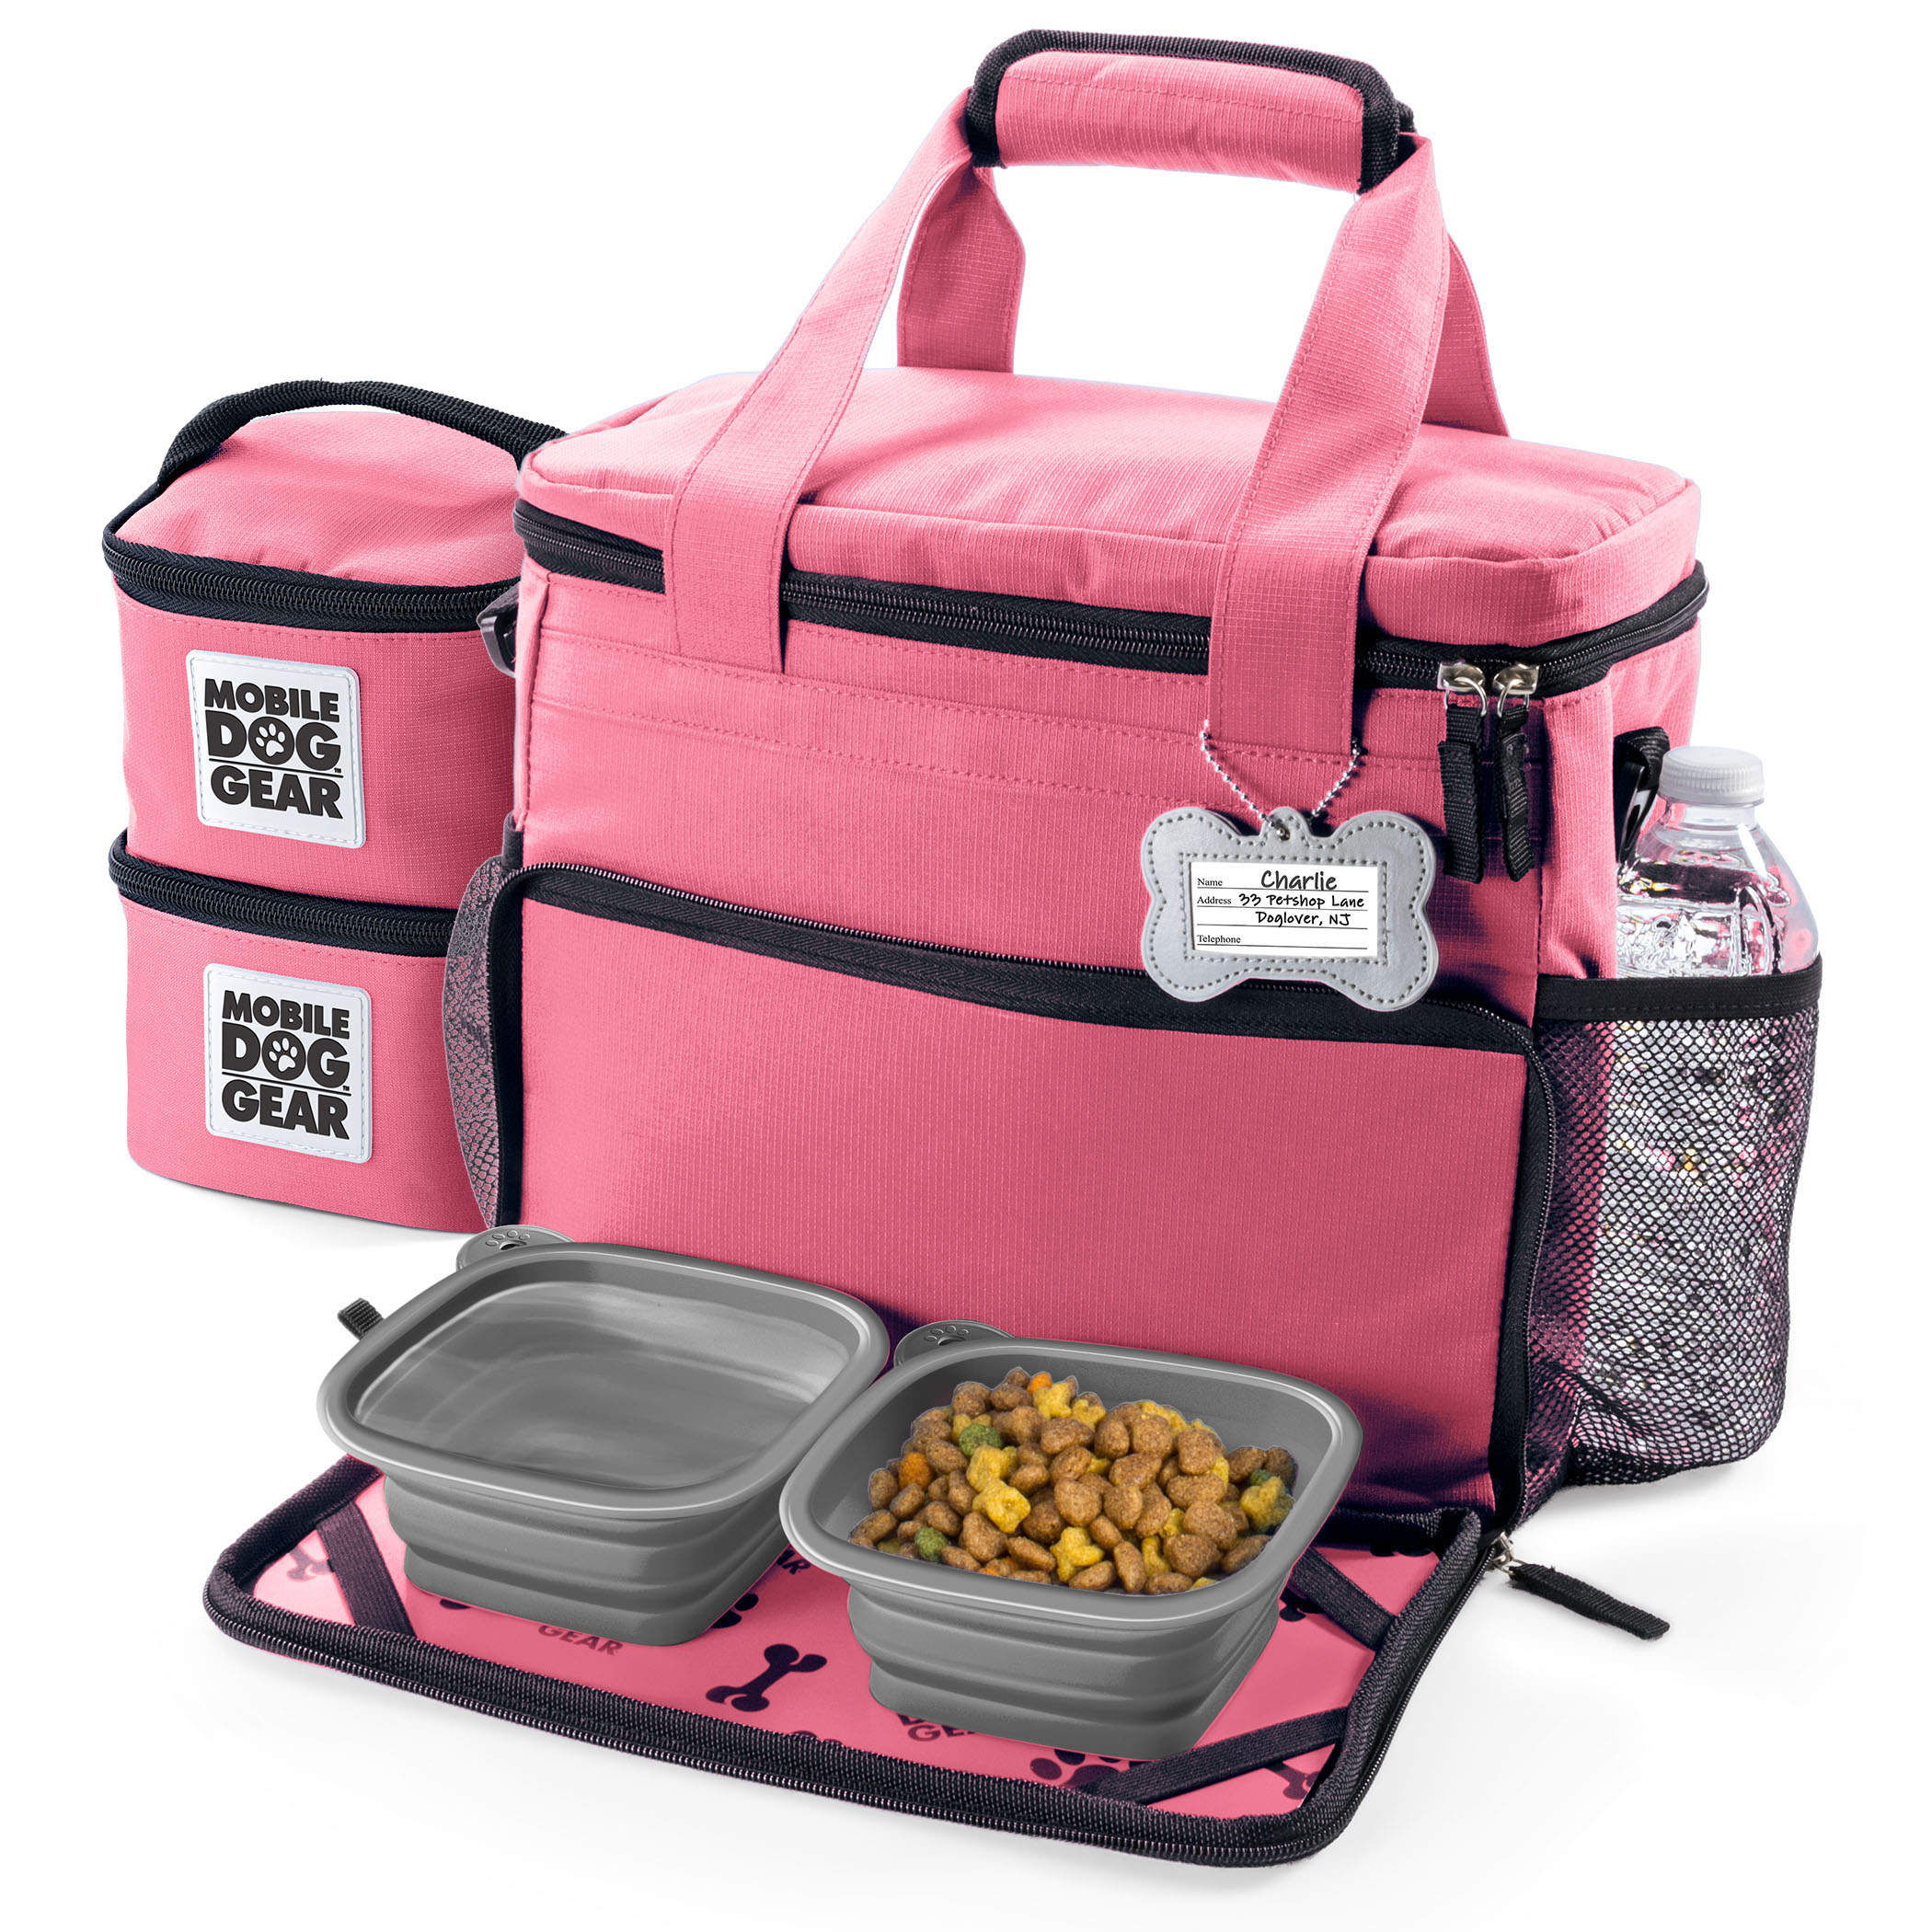 5 - MDG SM Week Away-Pink-beauty shot bag and food carriers closed - no dog.jpg